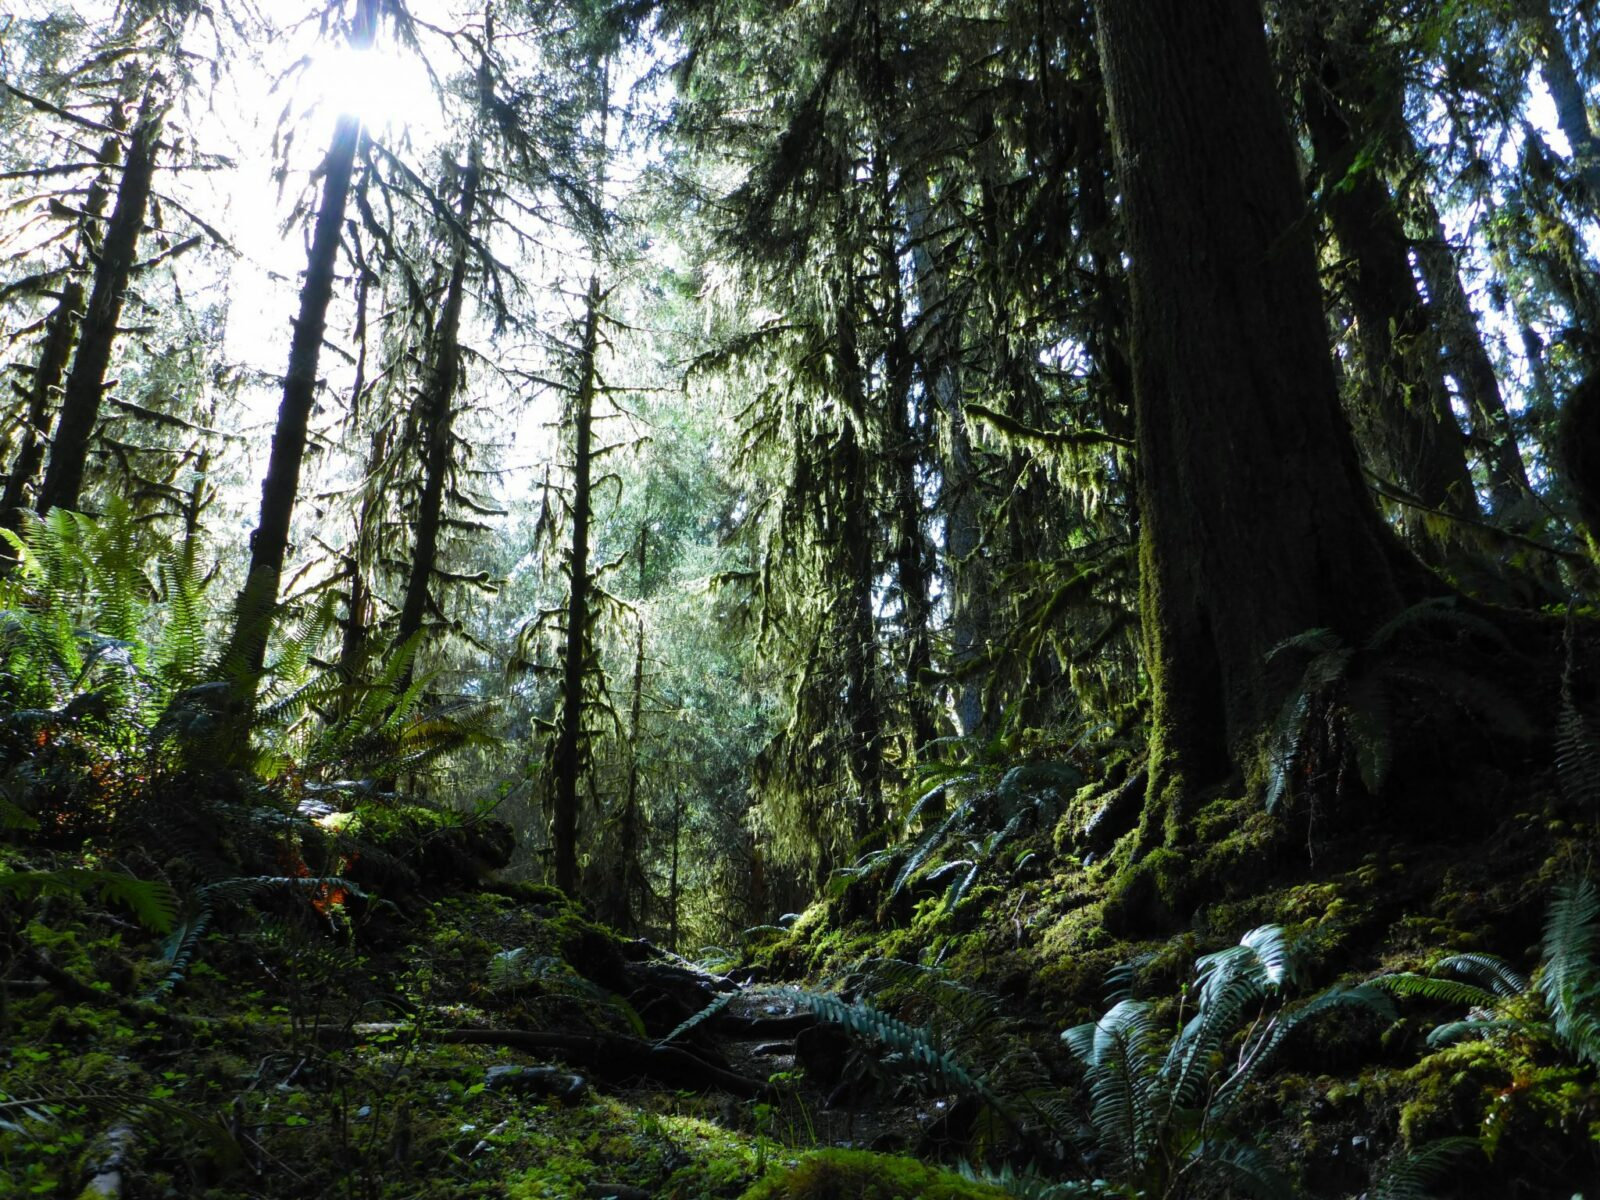 Dark green trees and heavy green undergrowth of ferns and moss in Olympic National Park, a weekend getaway from seattle